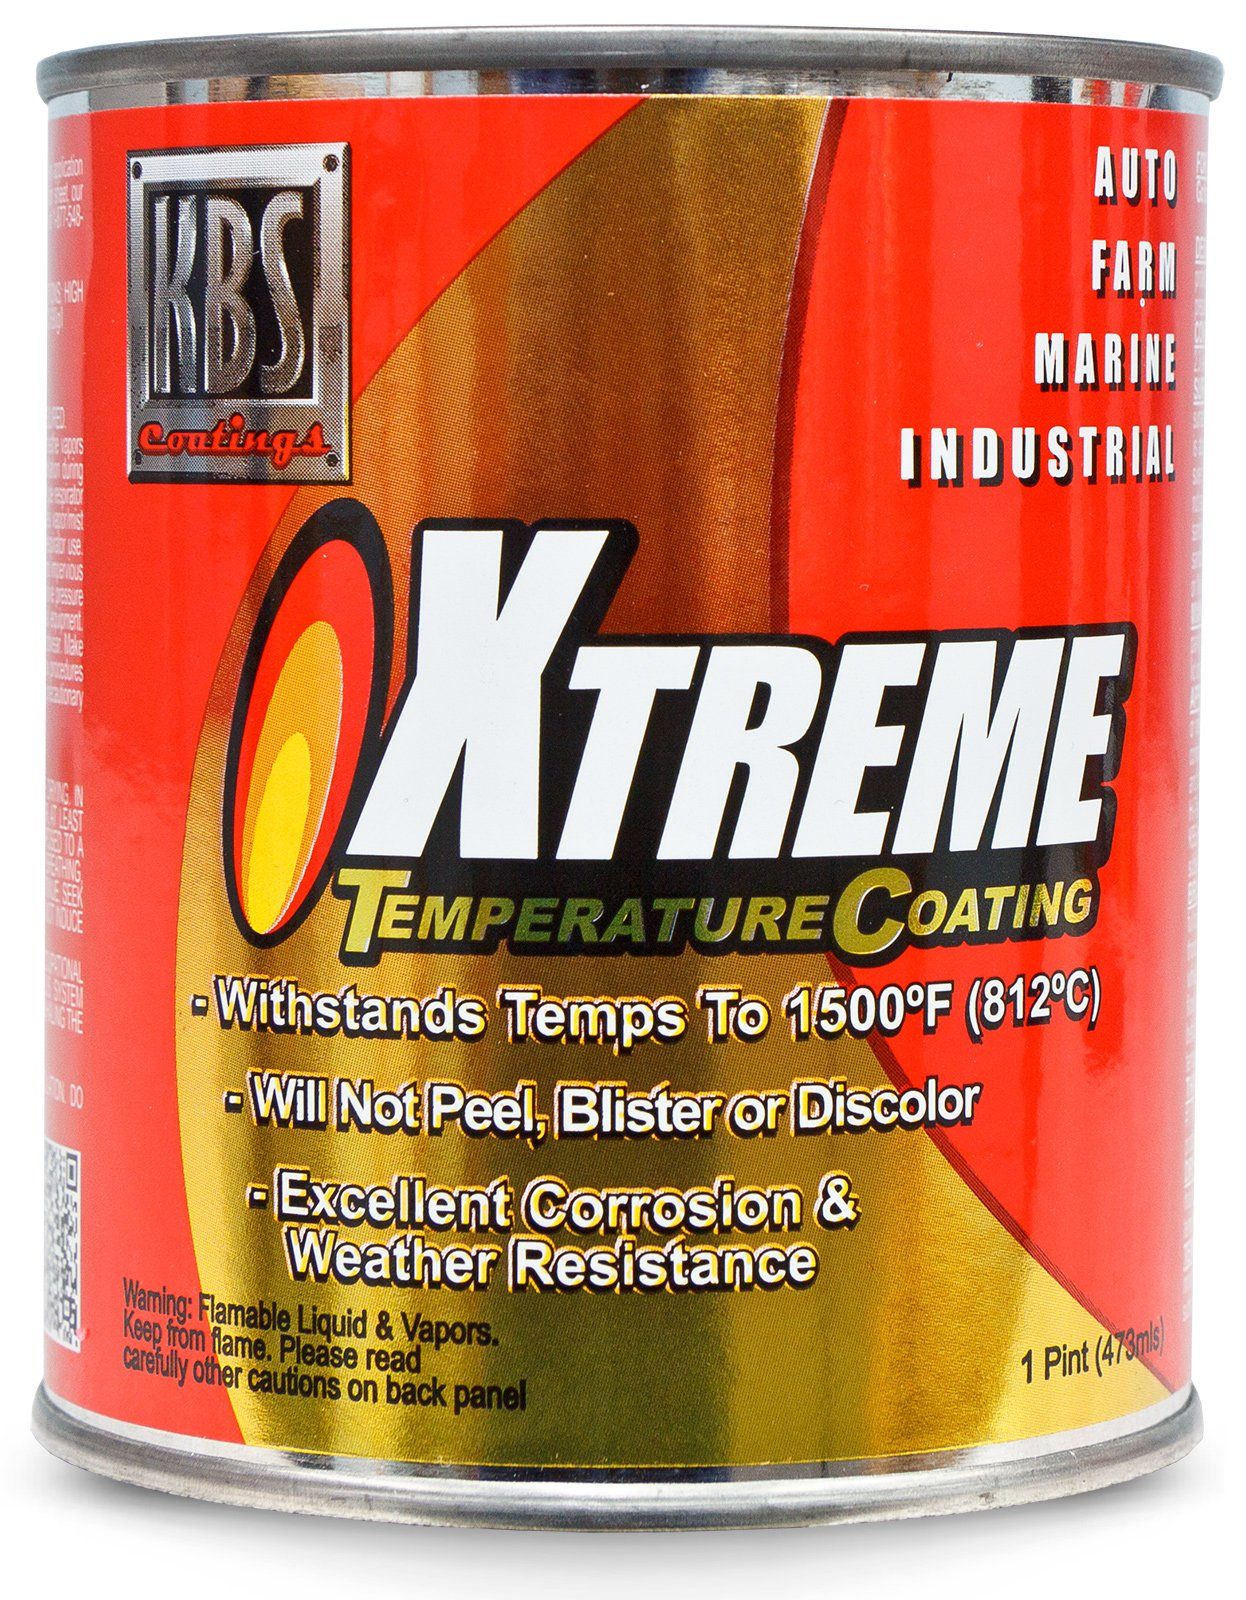 KBS Coatings 65308 Off-White Xtreme Temperature Coating - 1 Pint